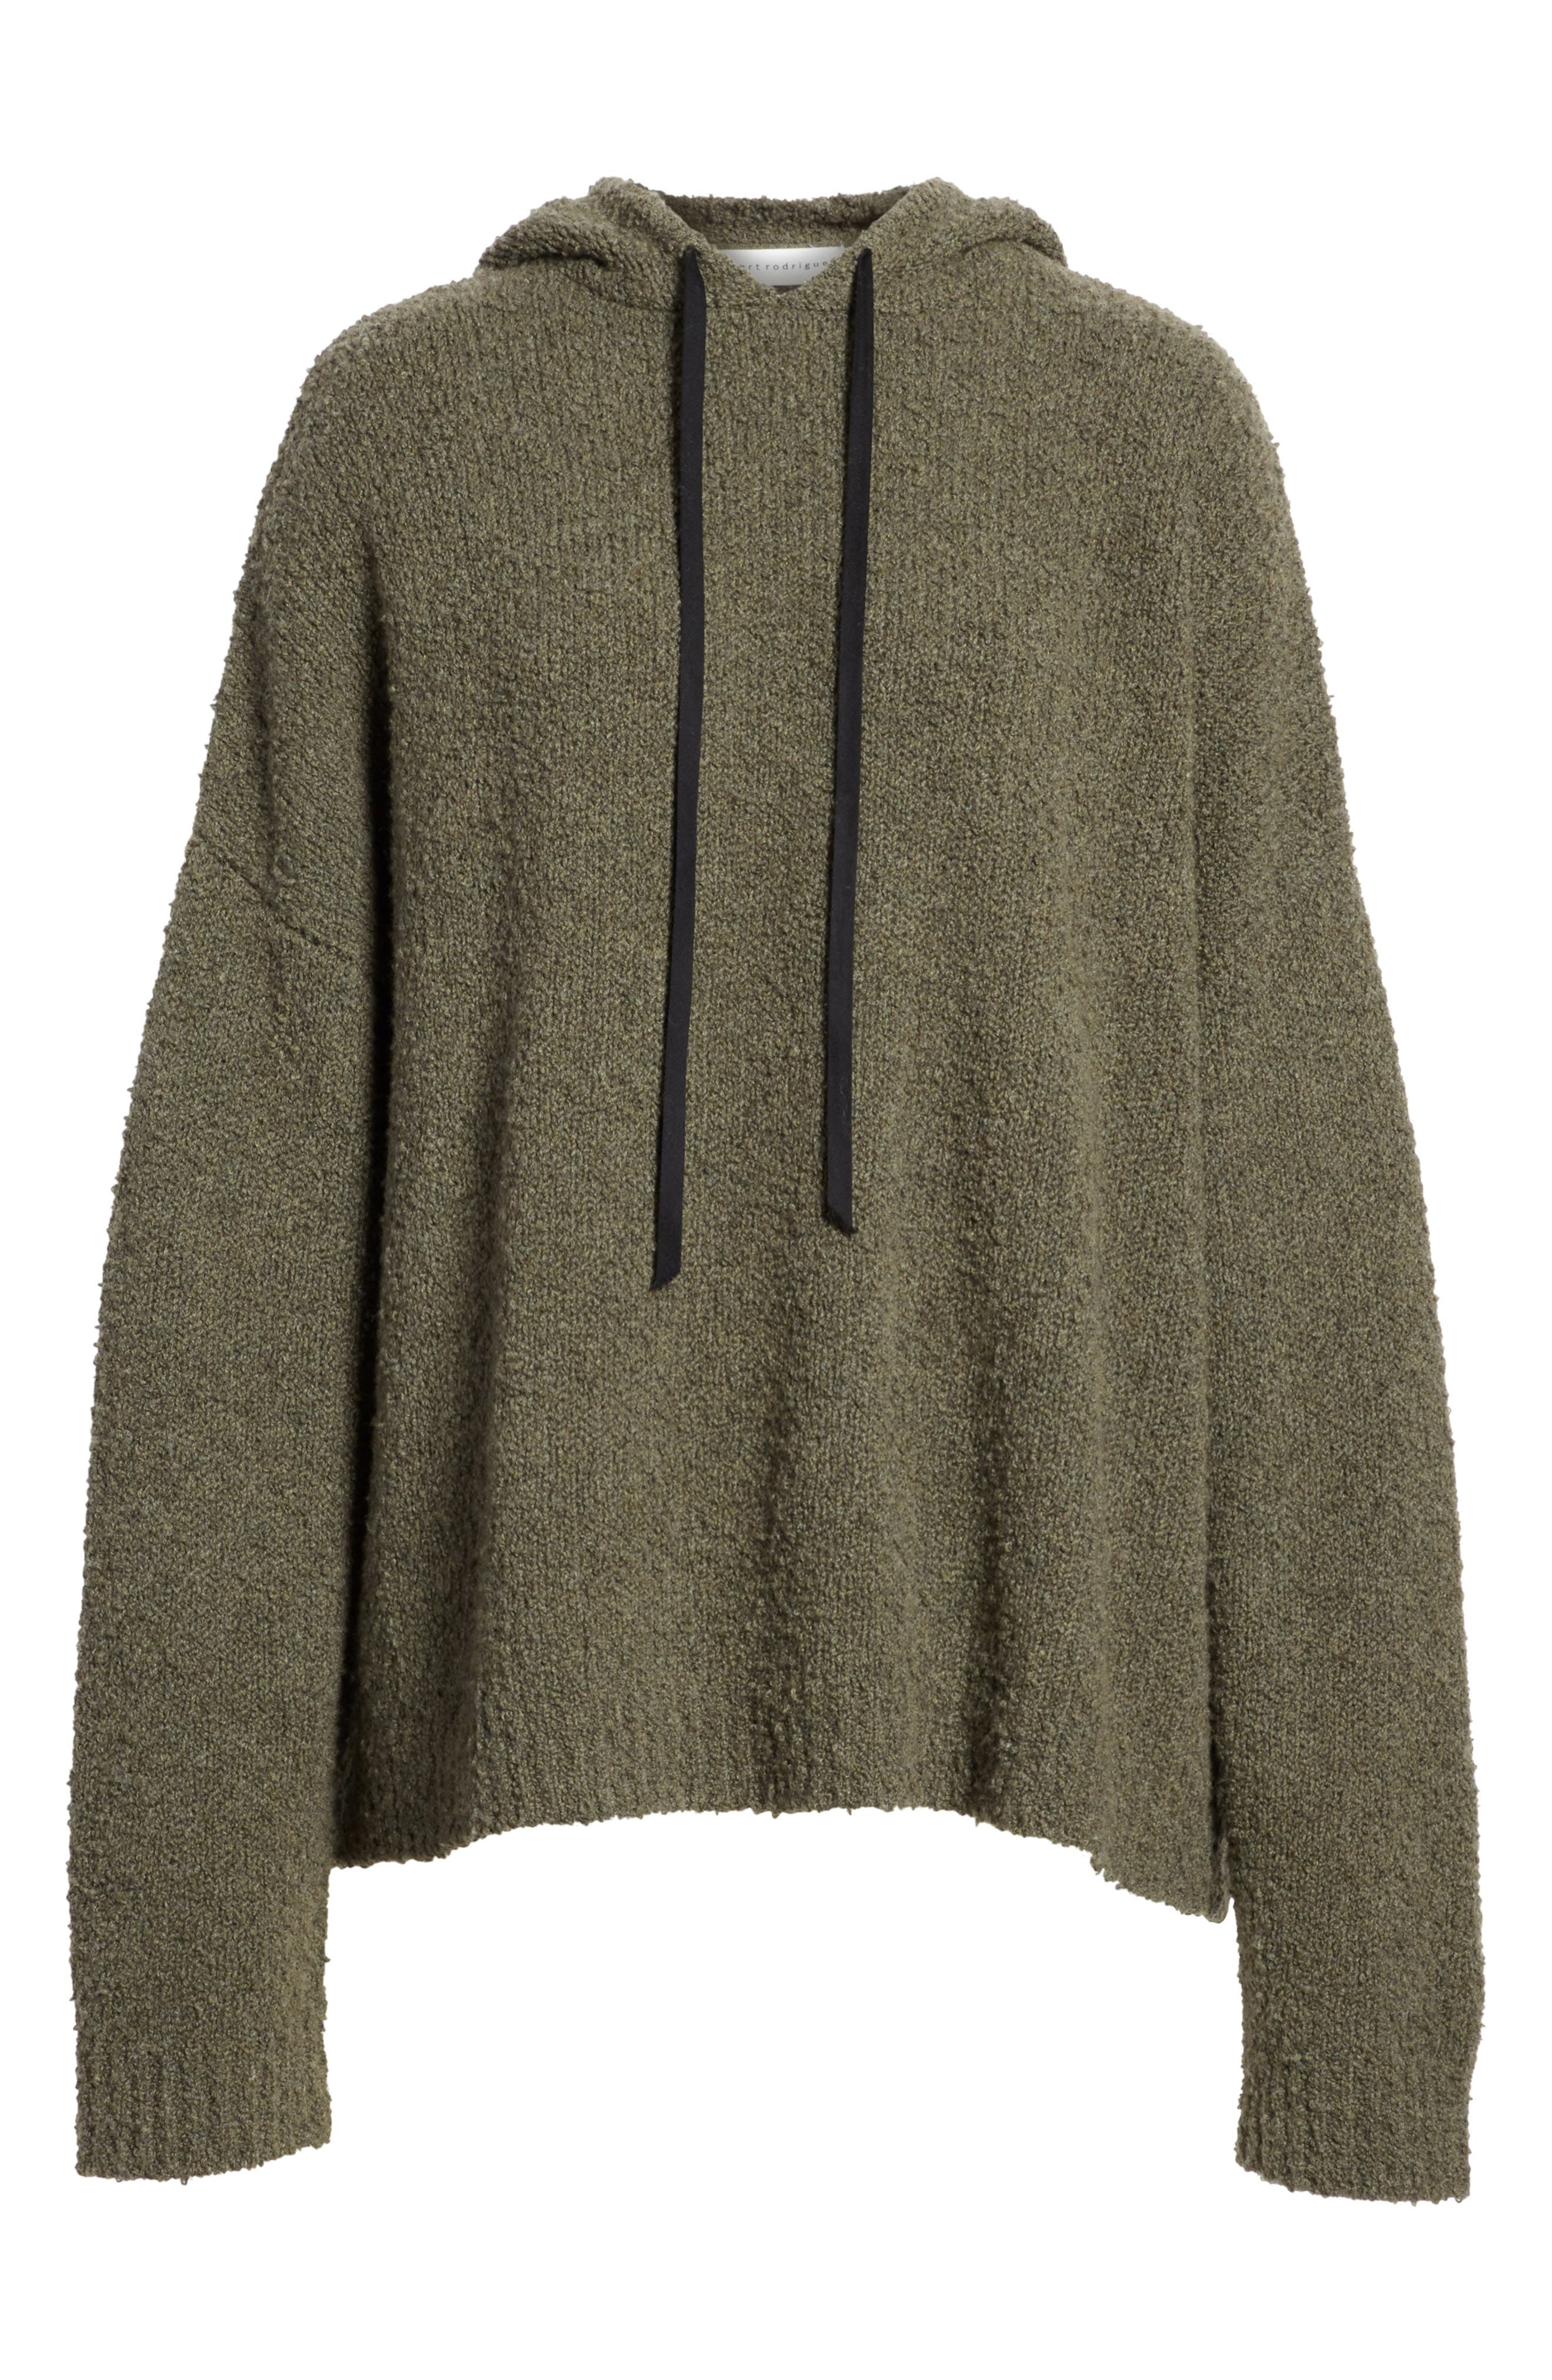 Merino Wool & Cashmere Reversible Hooded Sweater,                             Alternate thumbnail 6, color,                             300